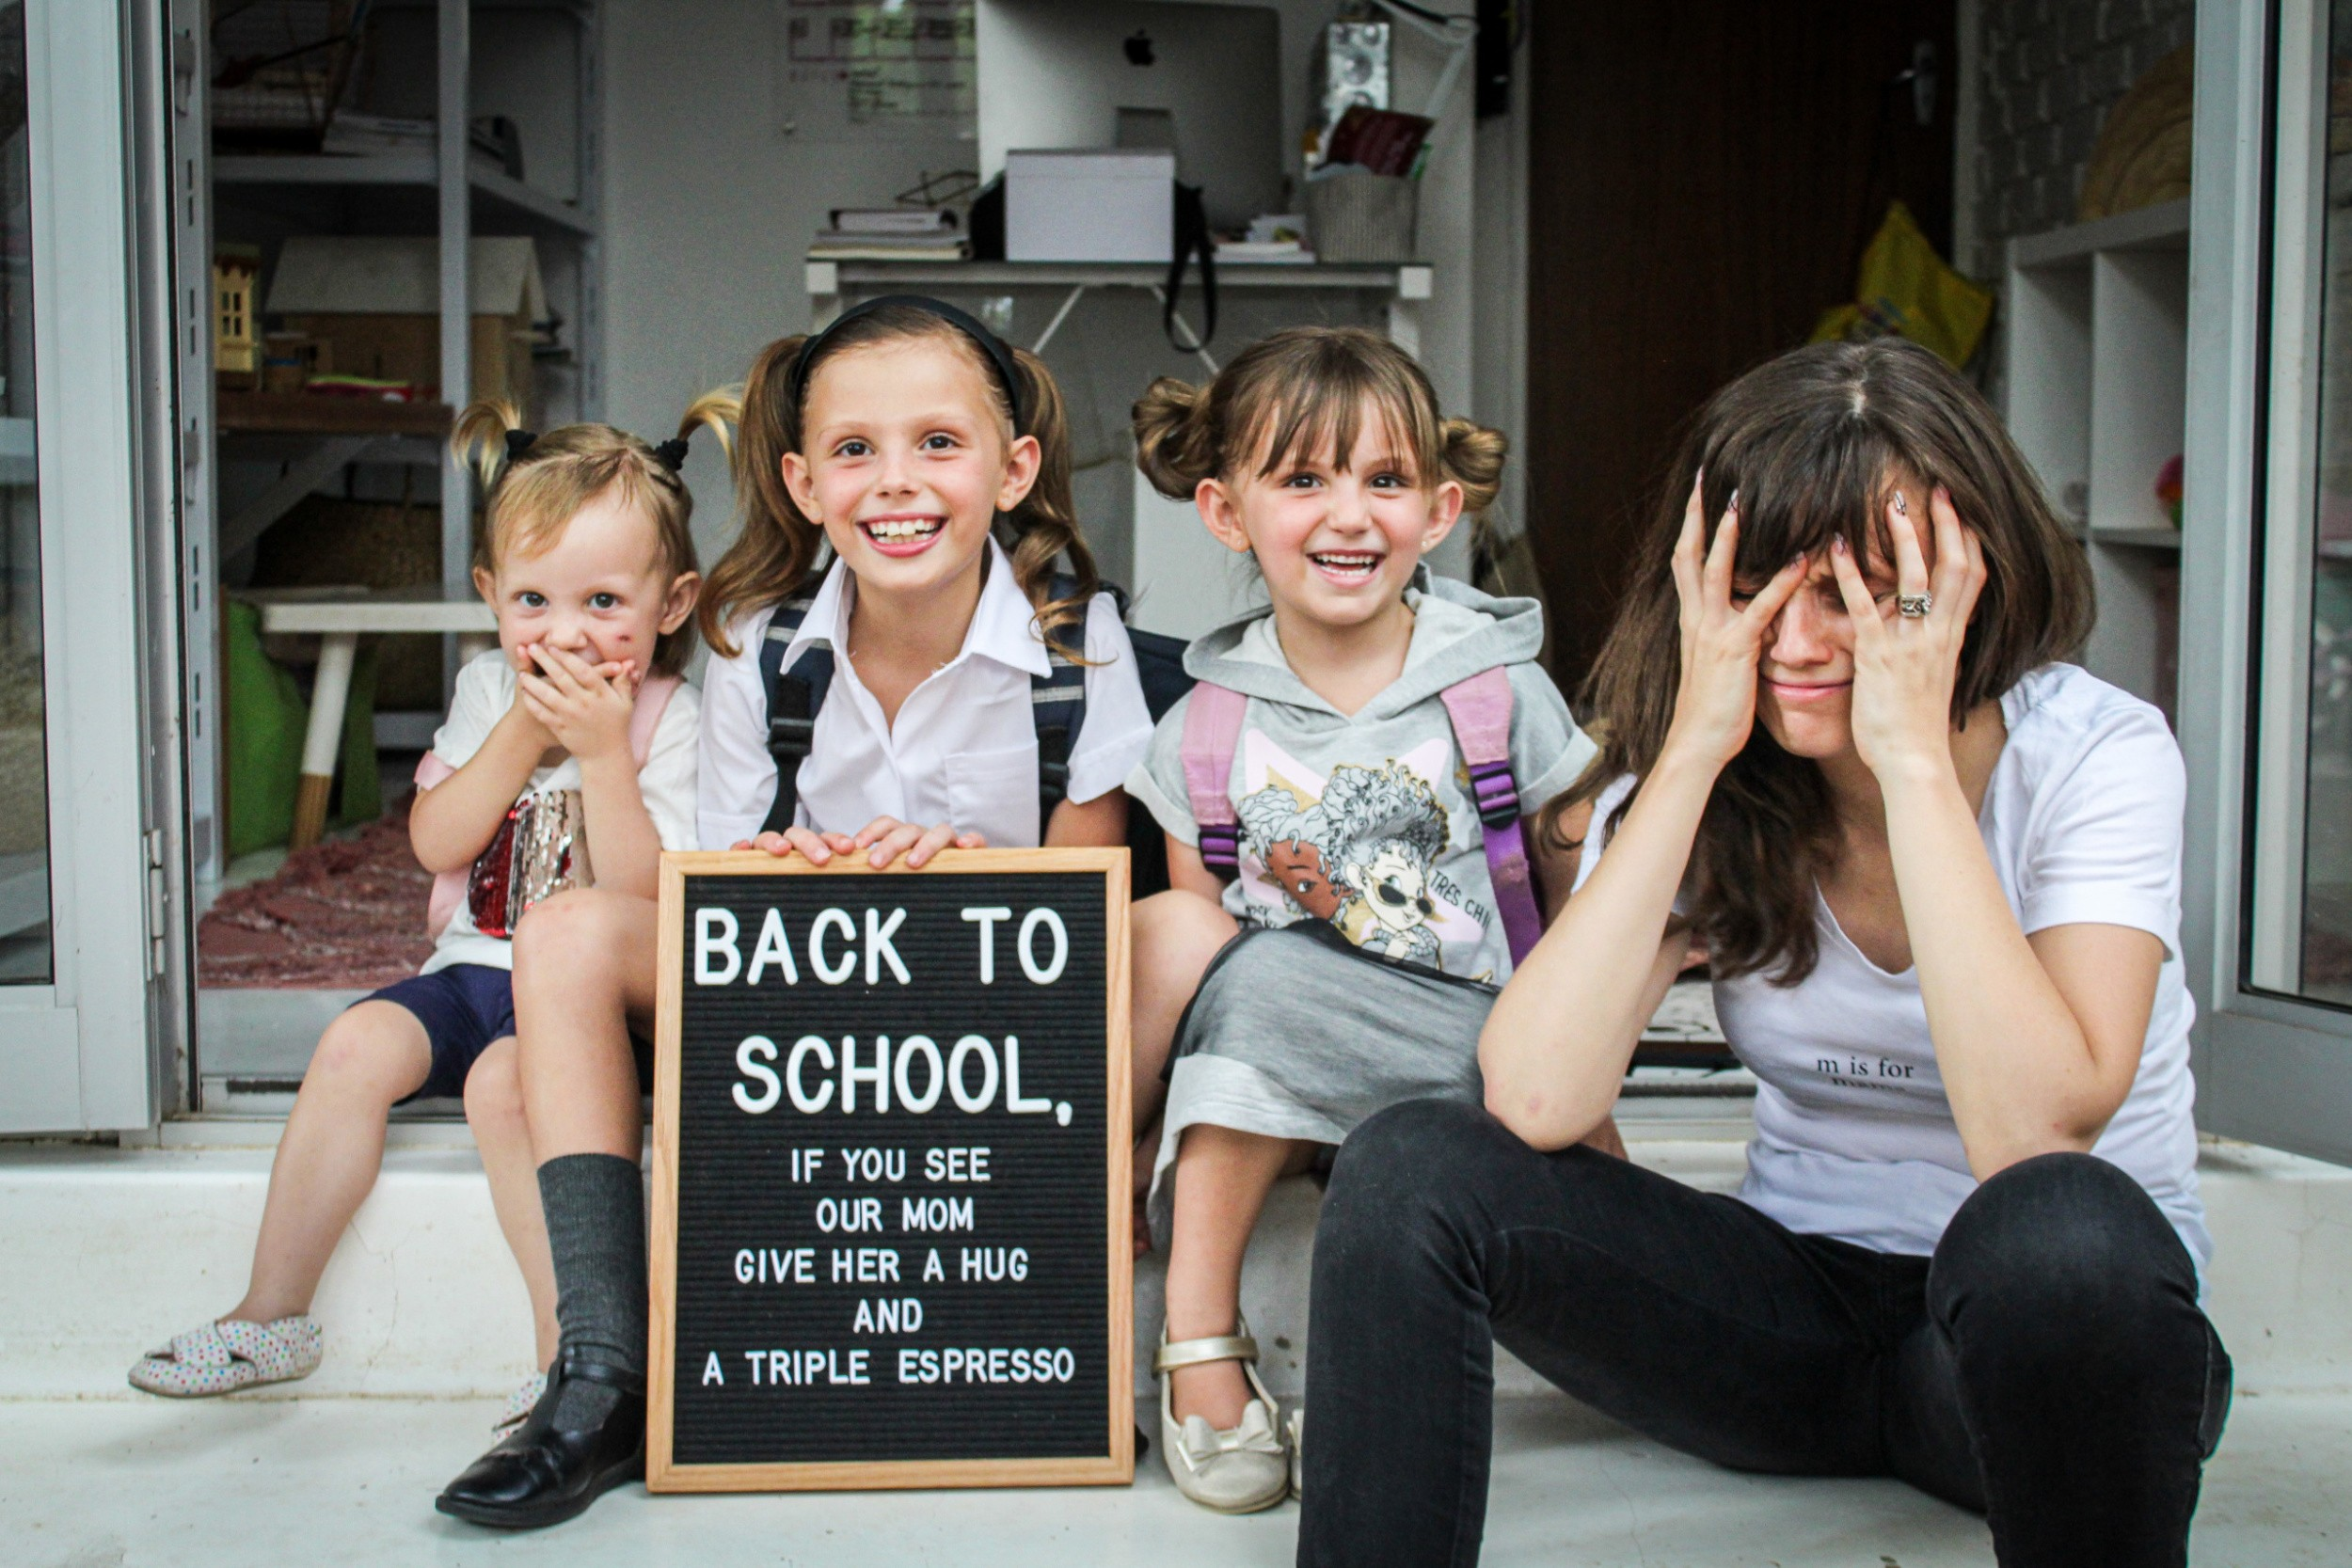 Preparing for Back to school scaled